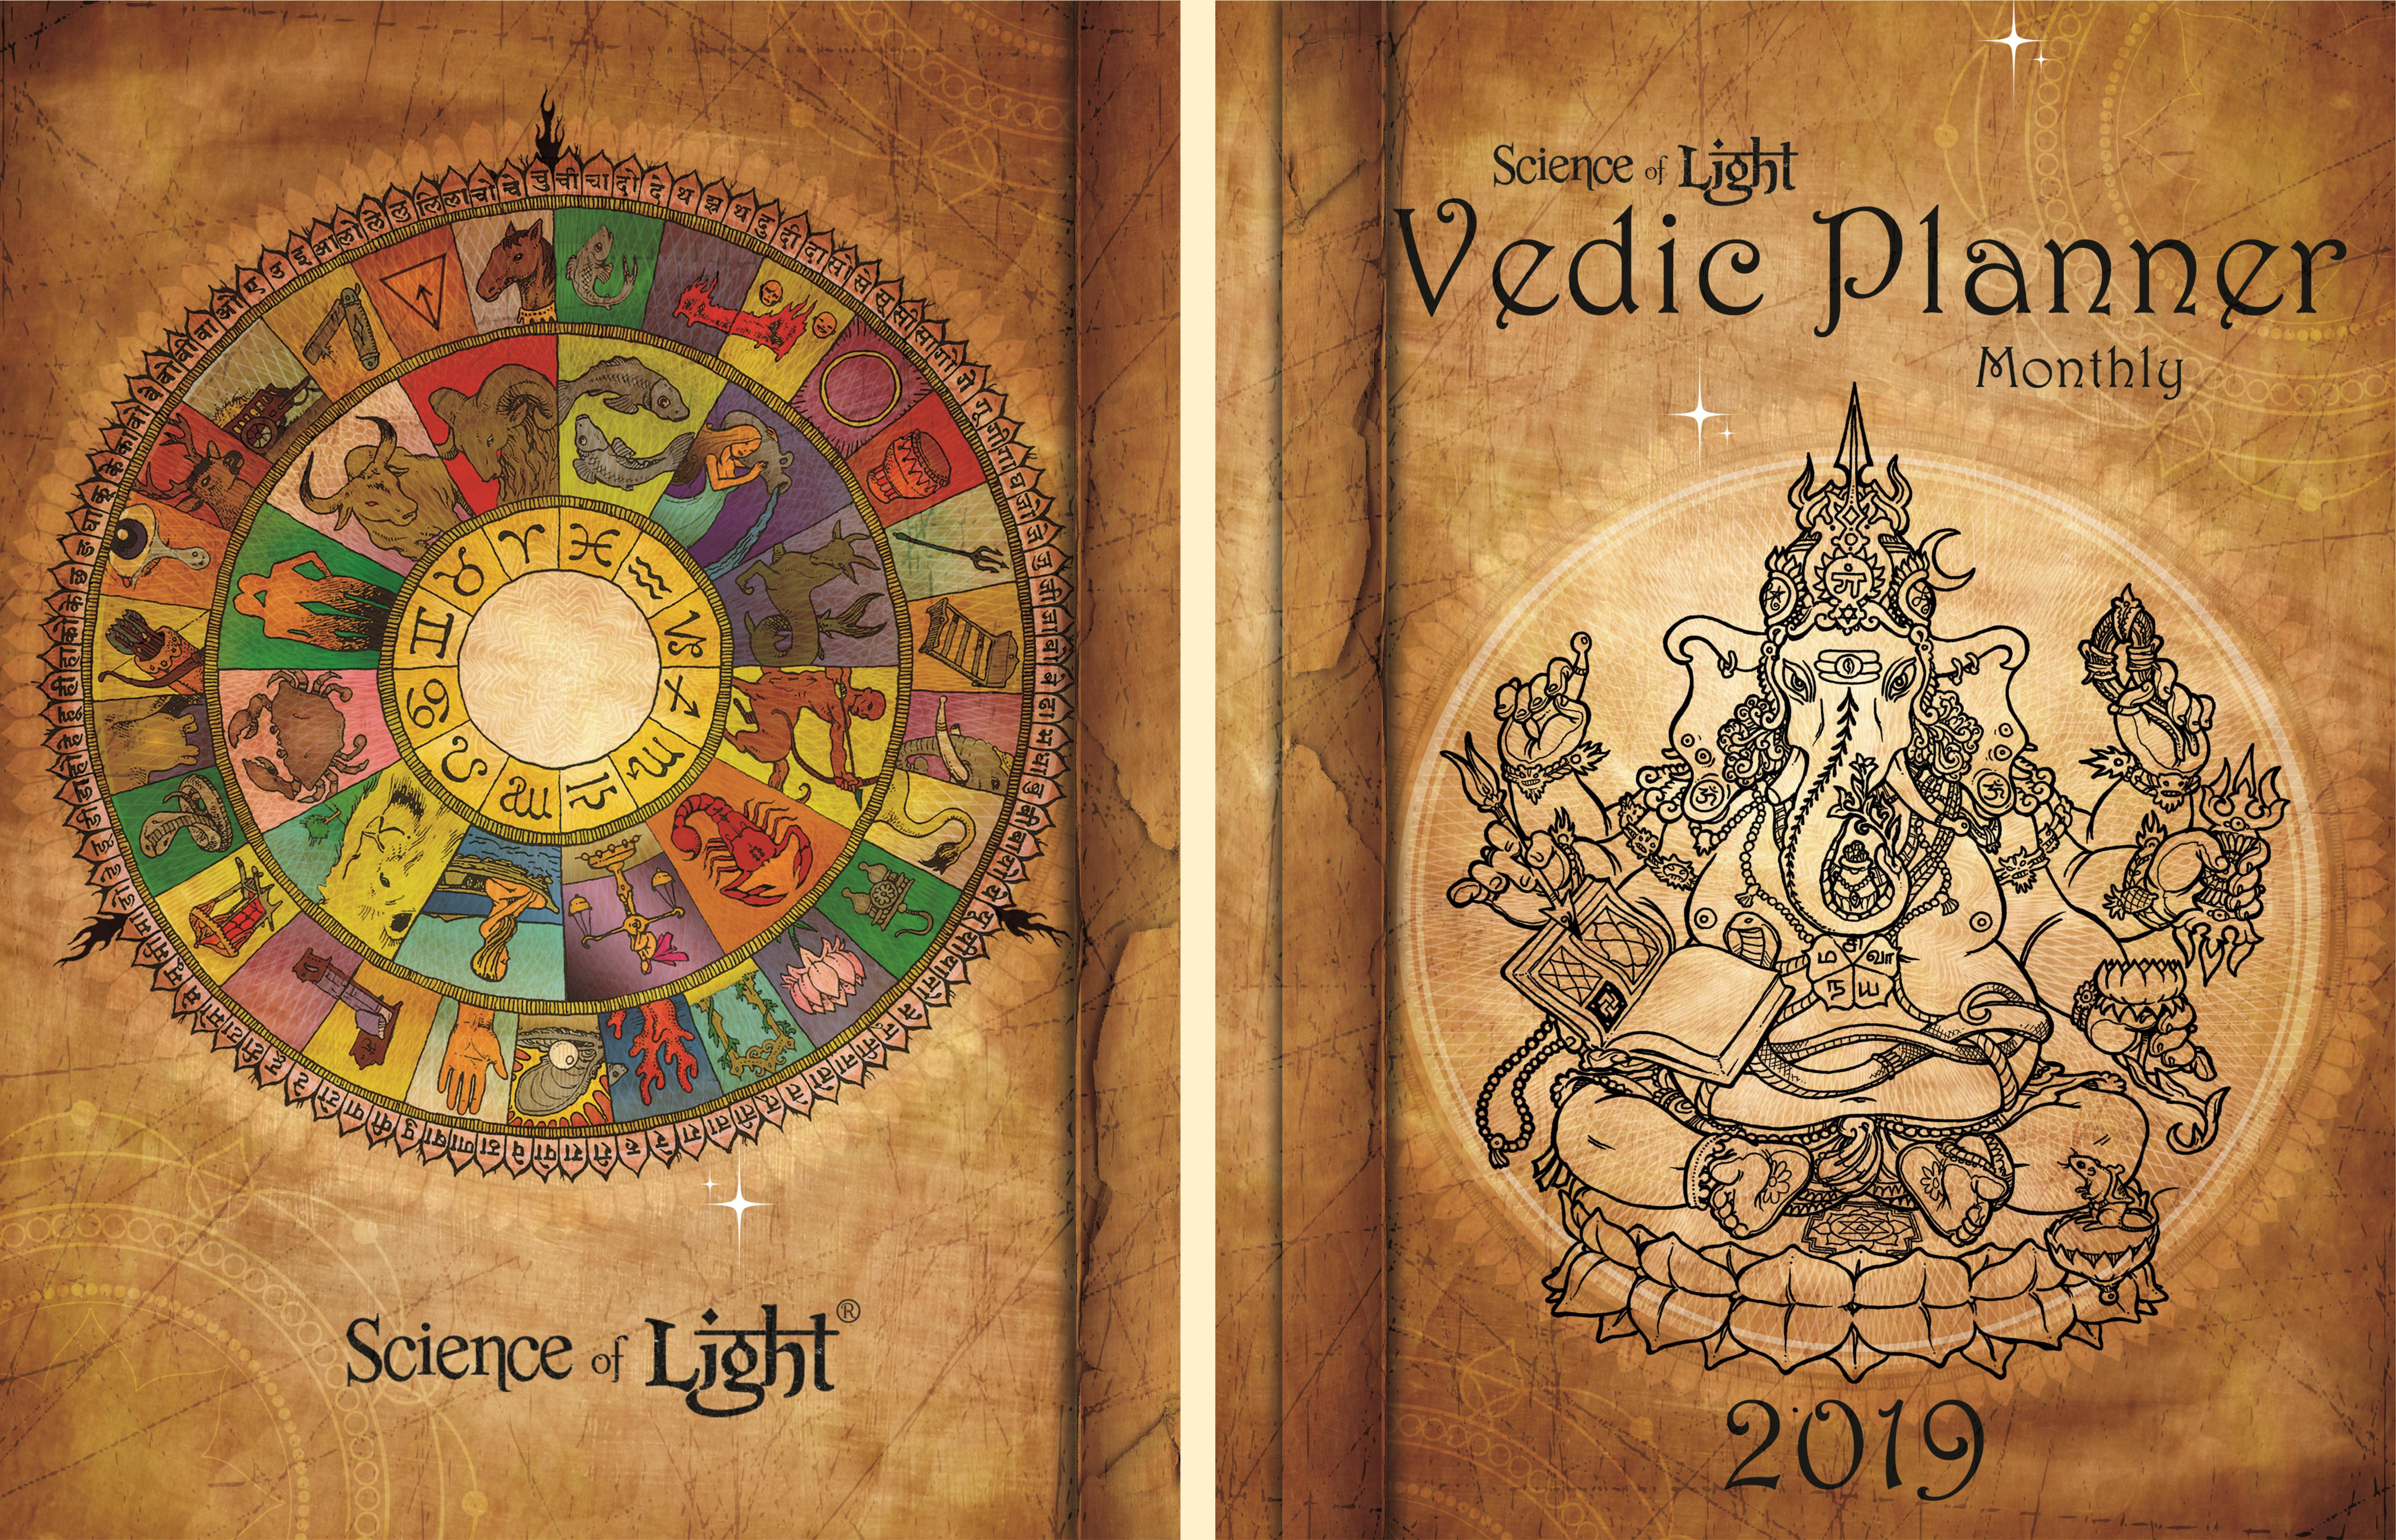 2019 Vedic Planner cover image